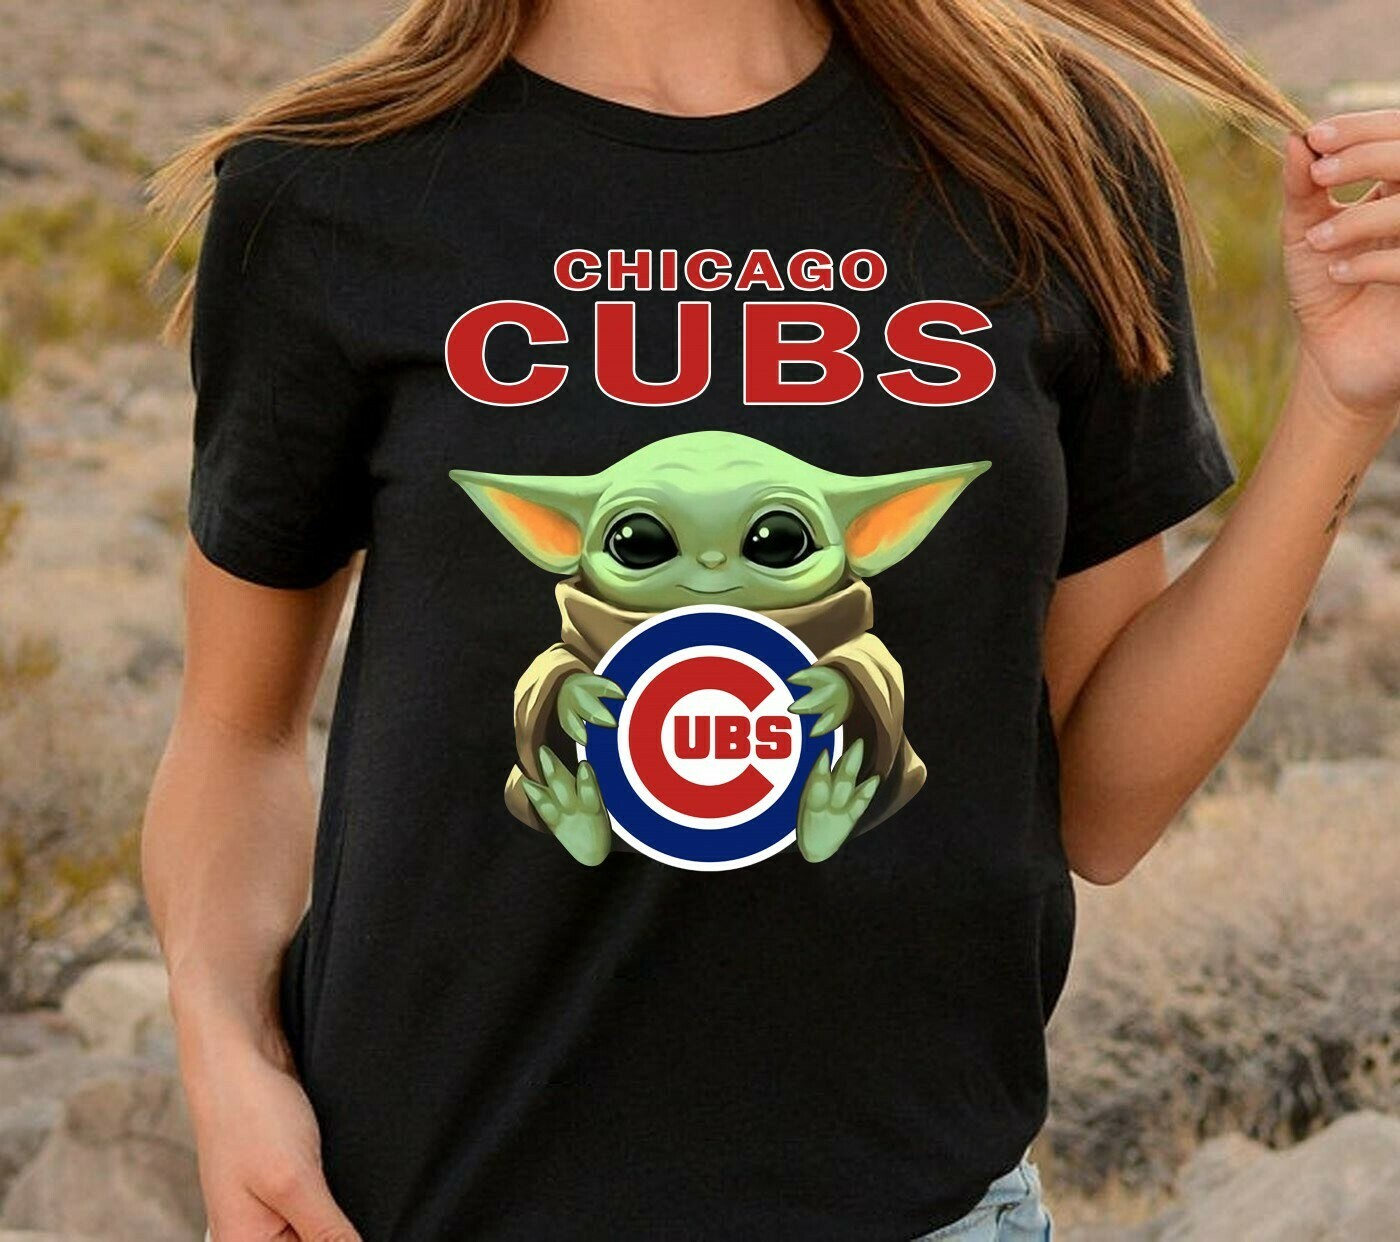 Chicago Cubs Baby Yoda Star Wars The Mandalorian The Child First Memories Floating Football Team Dad Mon Kid Fan Gift T-Shirt Long Sleeve Sweatshirt Hoodie Jolly Family Gifts